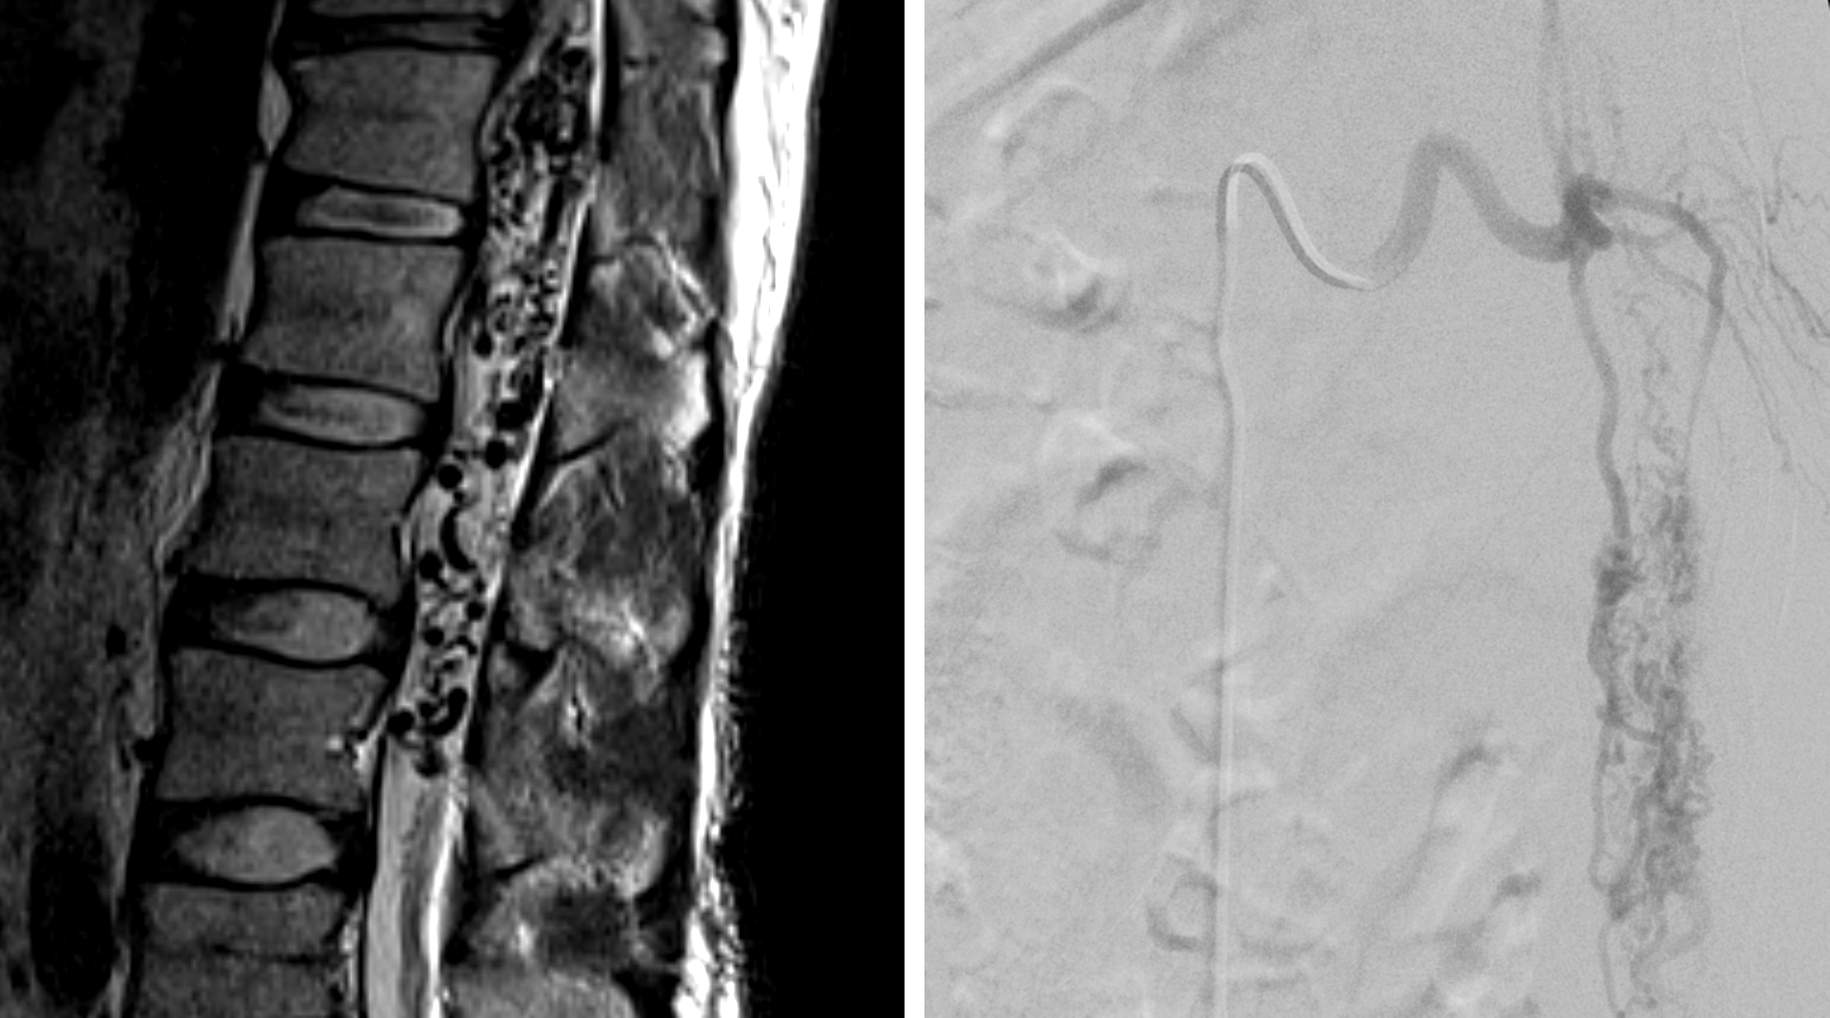 Figure 5: Sagittal MR imaging (left) and anteroposterior angiogram (right) demonstrated a perimedullary arteriovenous malformation. Note the large varices and the widespread serpiginous perimedullary flow voids around the conus medullaris. This patient underwent curative embolization of this malformation. Resection of this malformation can be challenging because of the involvement of the cauda equina.